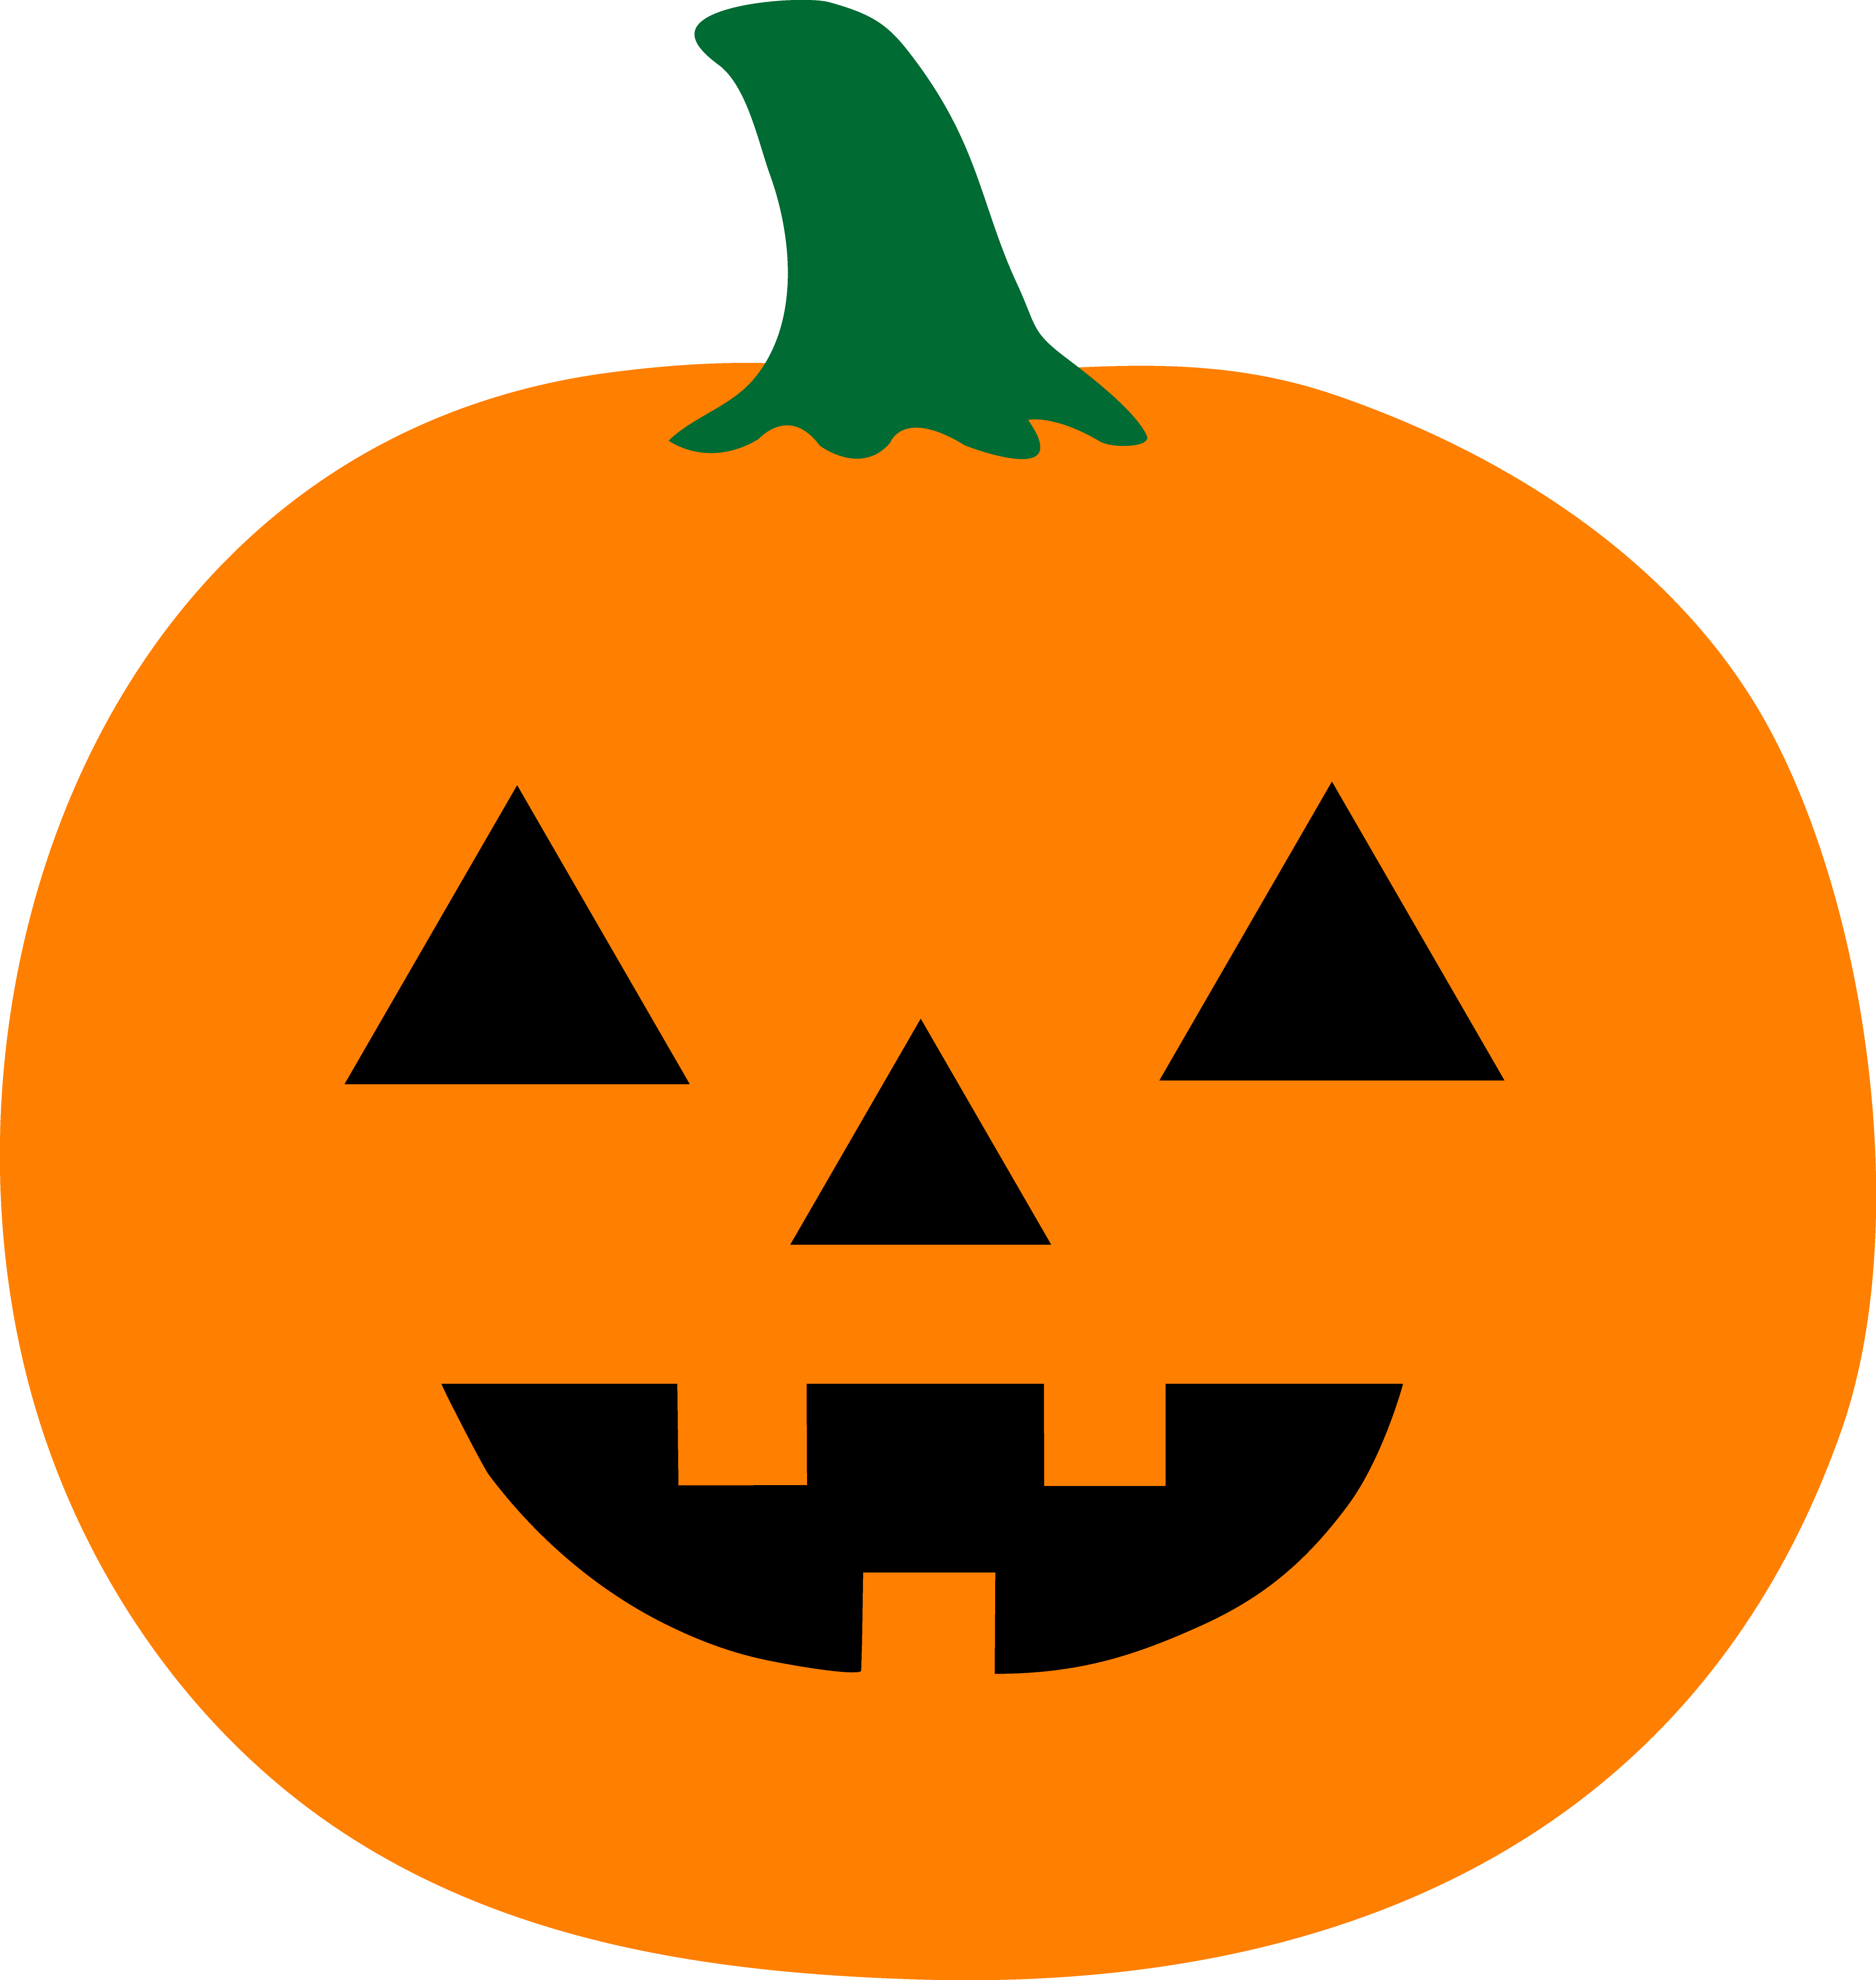 Jackolantern vector pumpkin carving. Simple halloween jack o